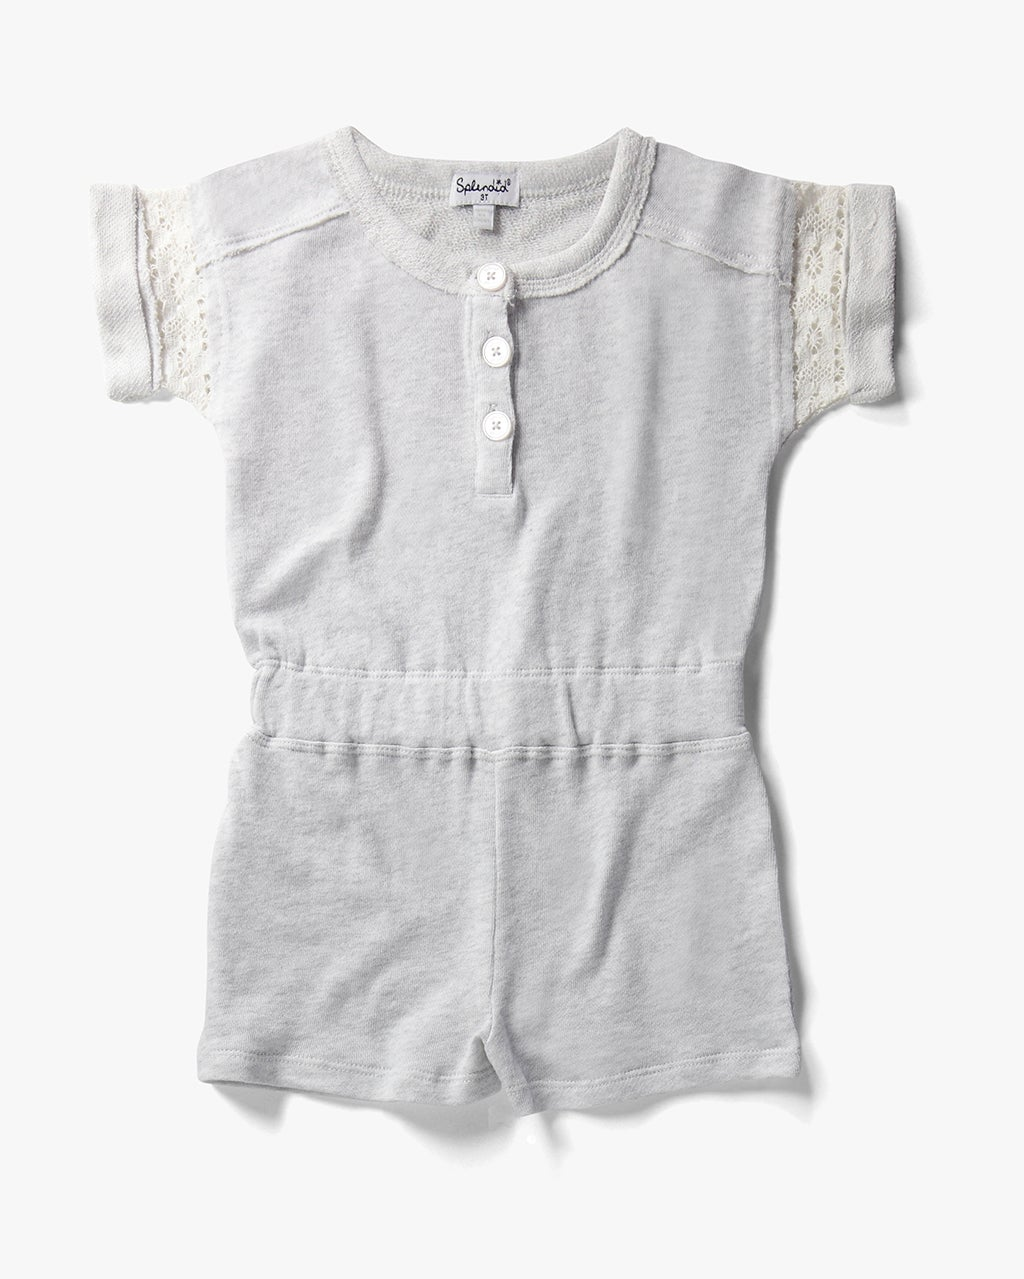 Splendid Little Girl French Terry Romper With Lace